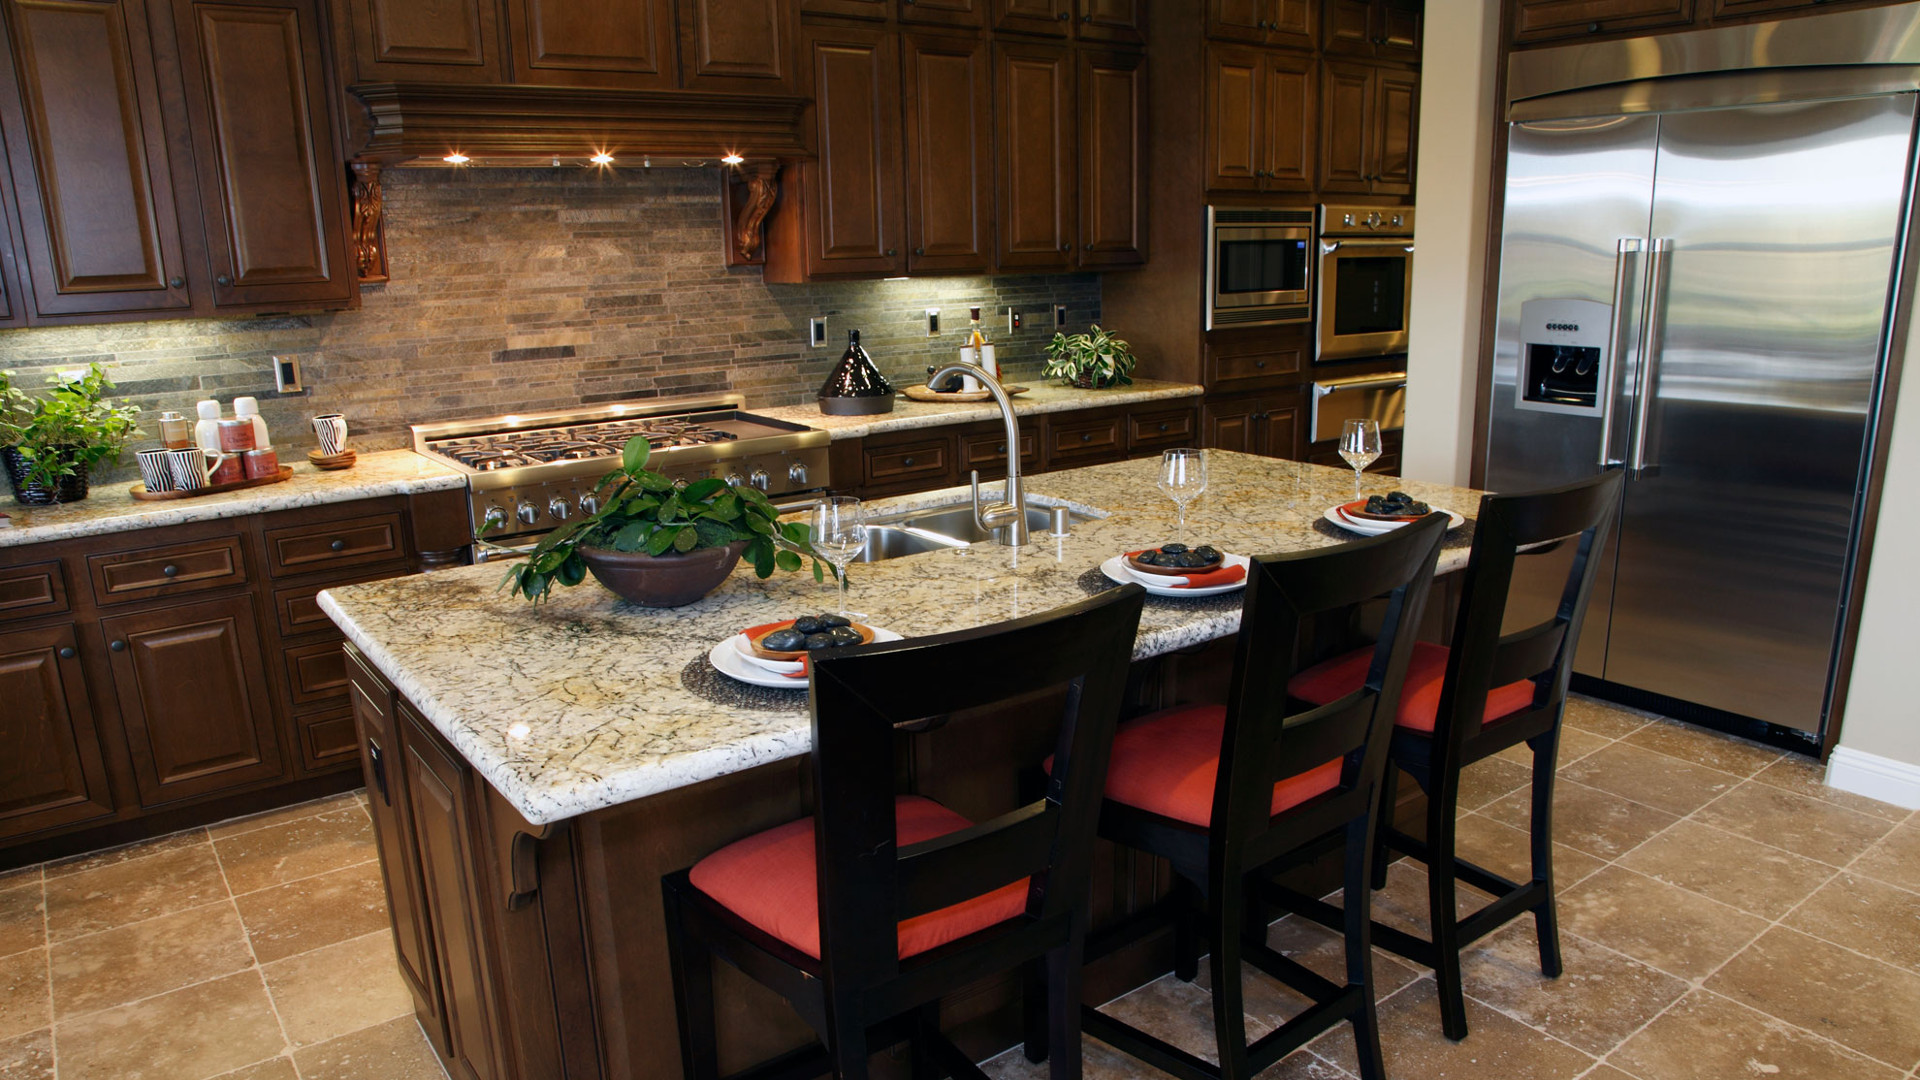 Uncategorized Kitchen Design San Antonio antonio kitchen remodeling san remodeling